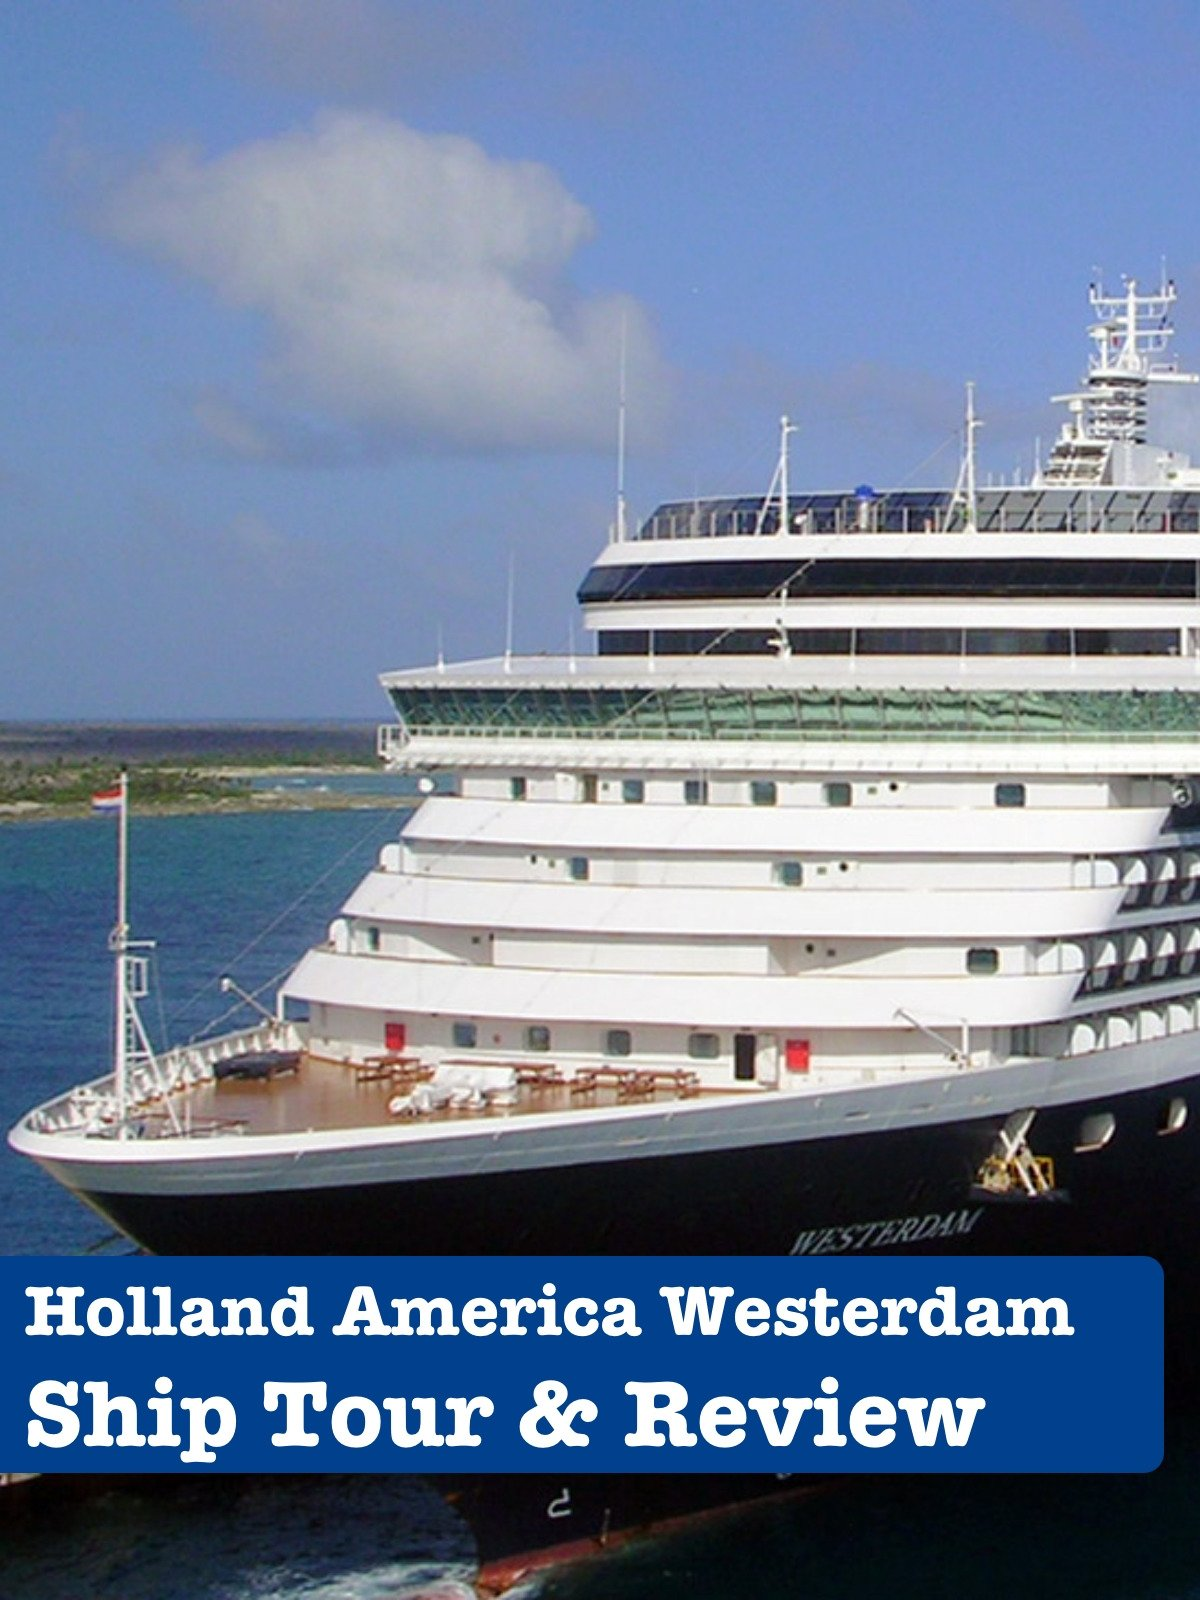 Clip: Holland America Westerdam Ship Tour And Review on Amazon Prime Video UK